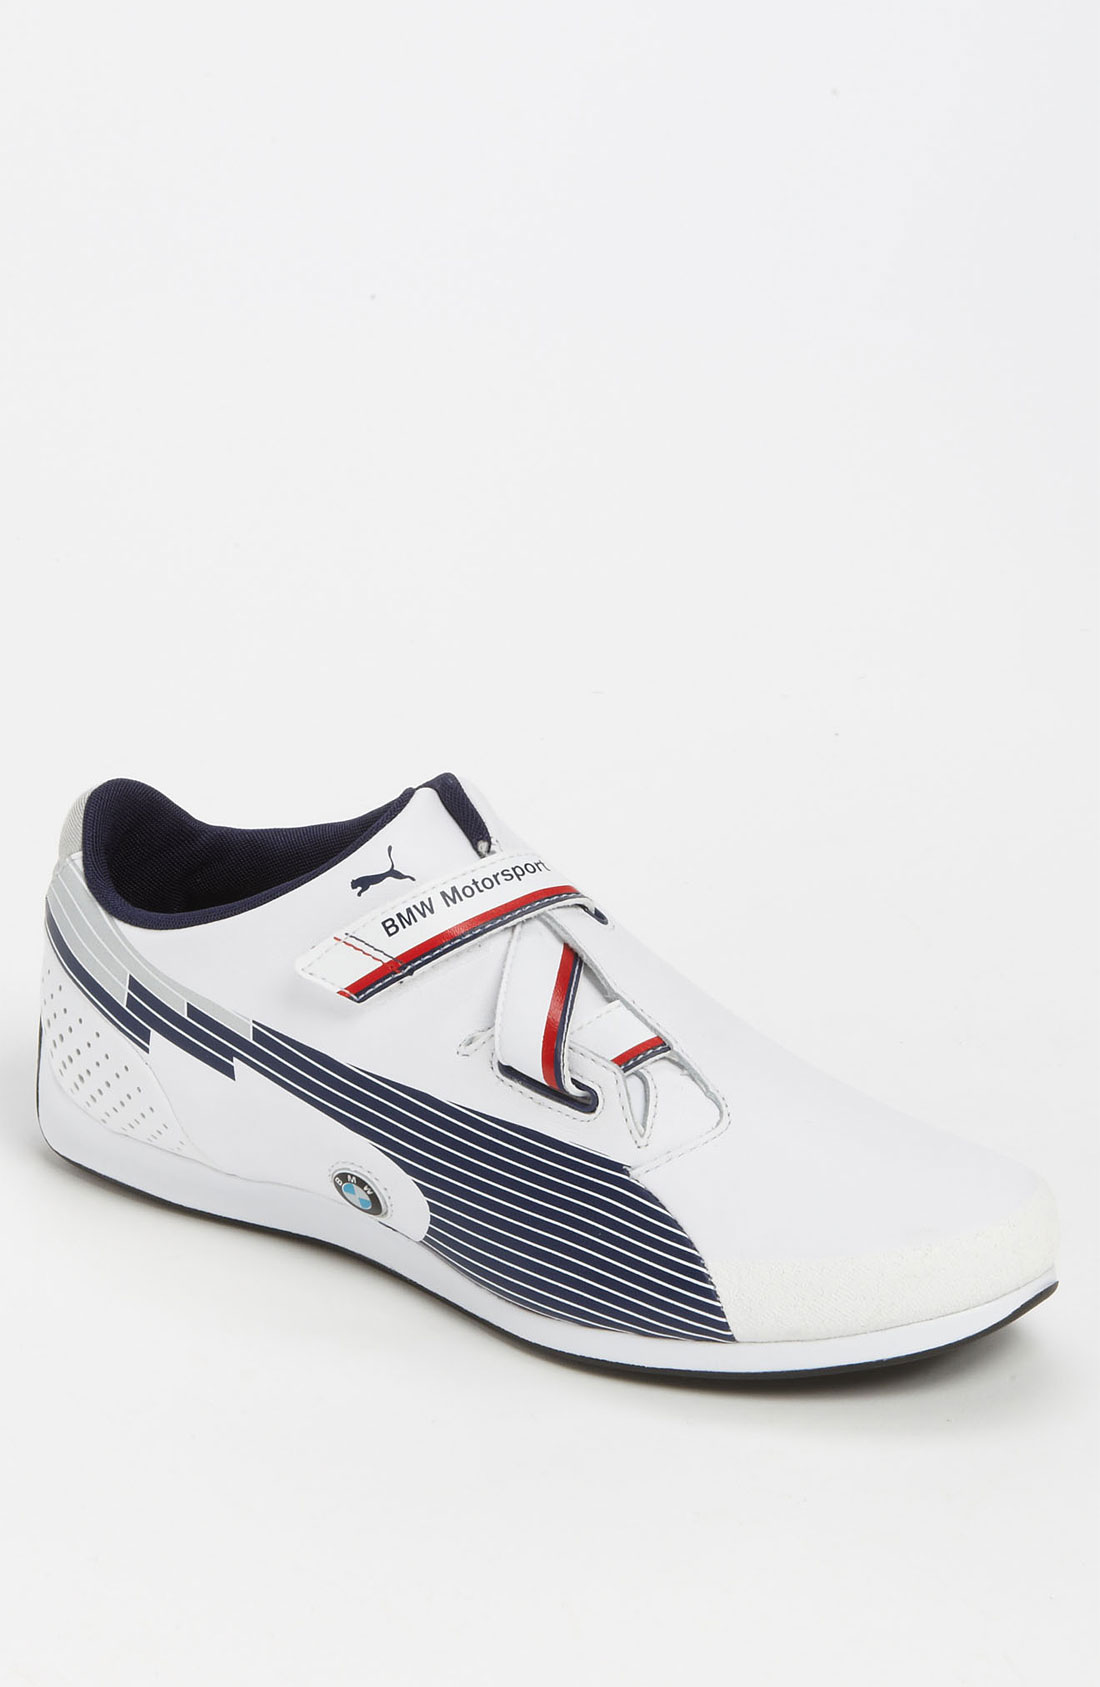 puma evo speed f1 bmw sneaker in white for men white. Black Bedroom Furniture Sets. Home Design Ideas